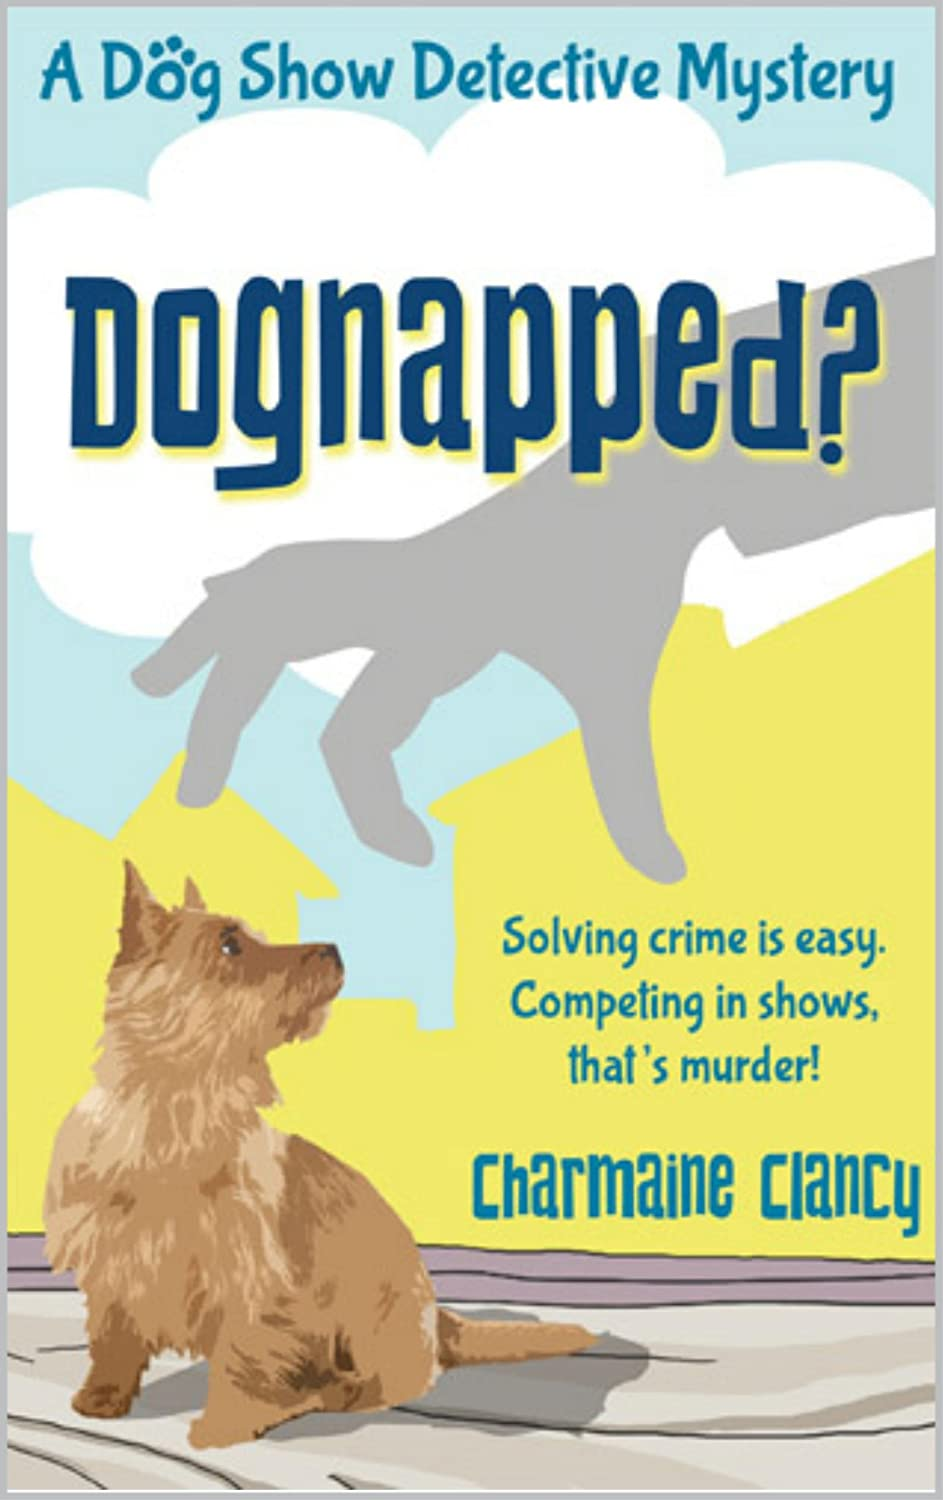 Dognapped? A dog show detective mystery - mystery for girls